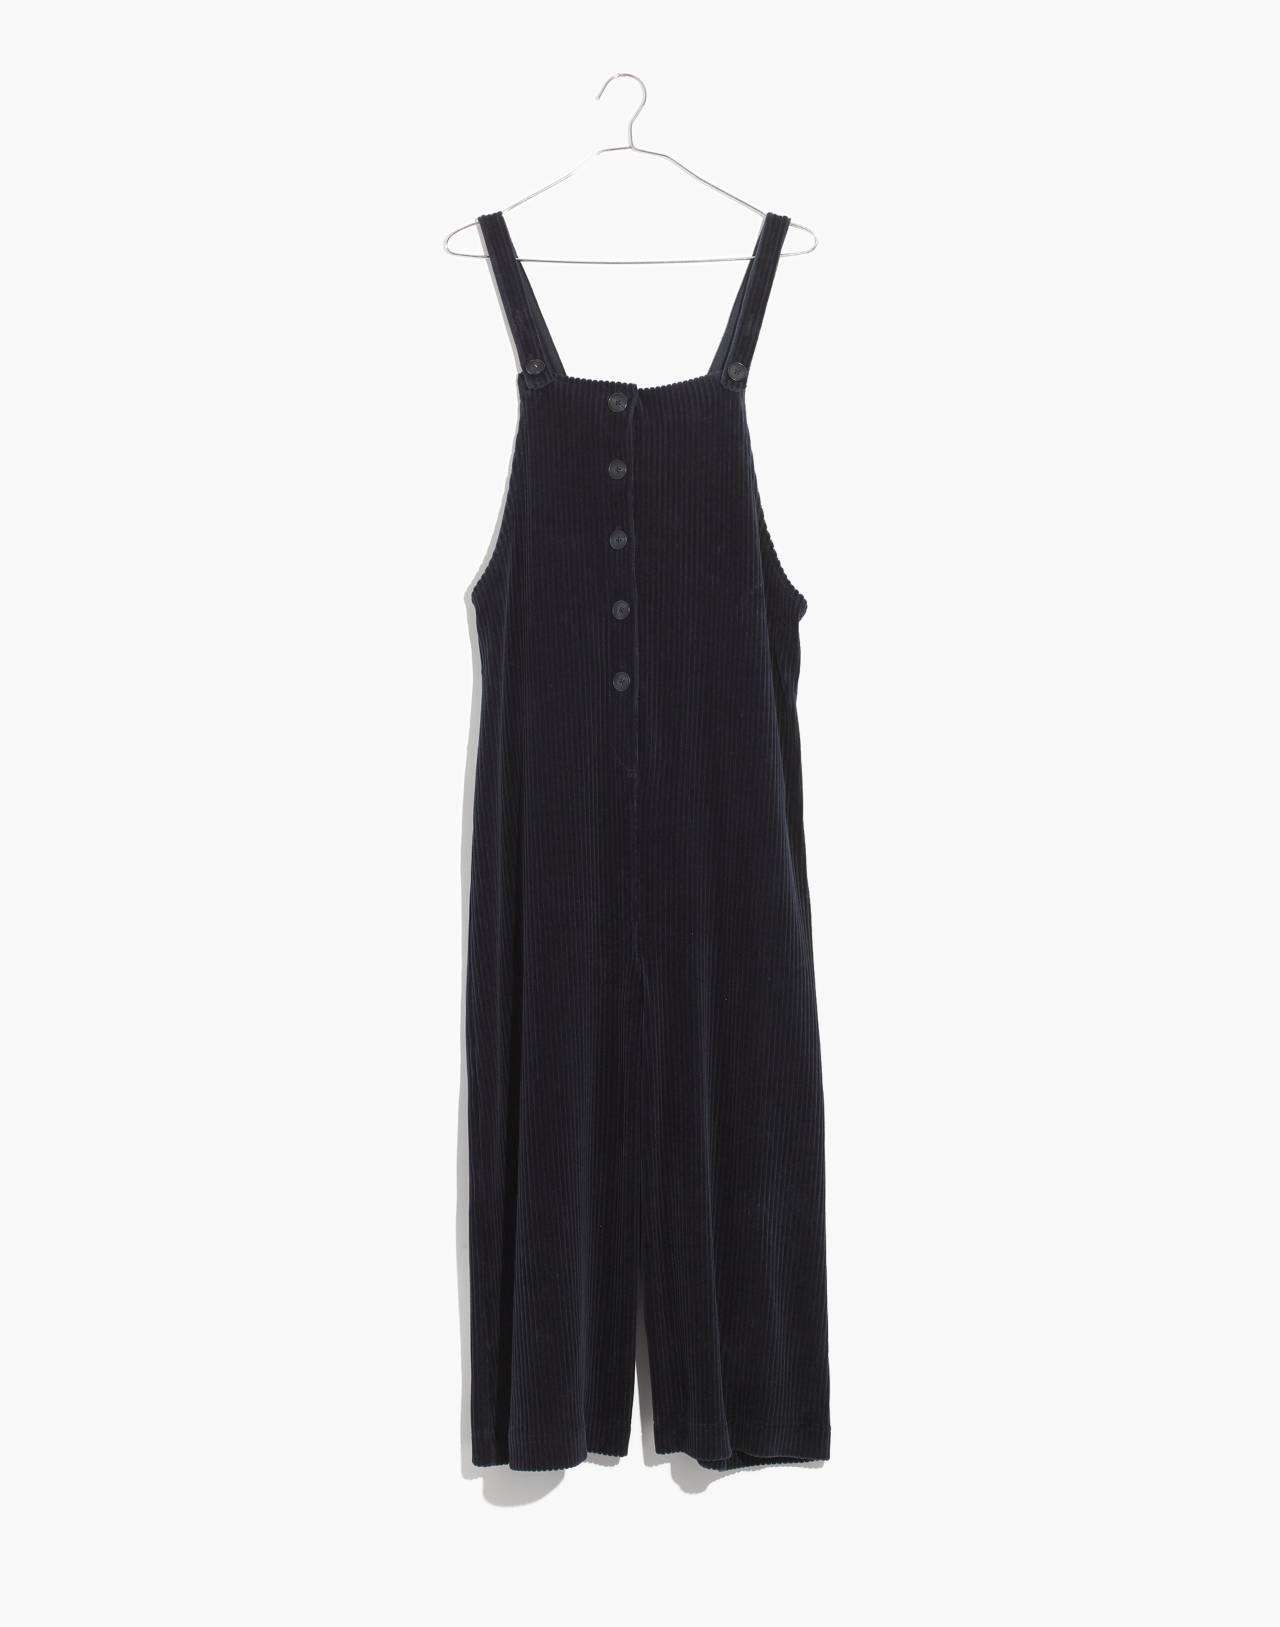 Texture & Thread Velour Corduroy Overalls in deep navy image 4